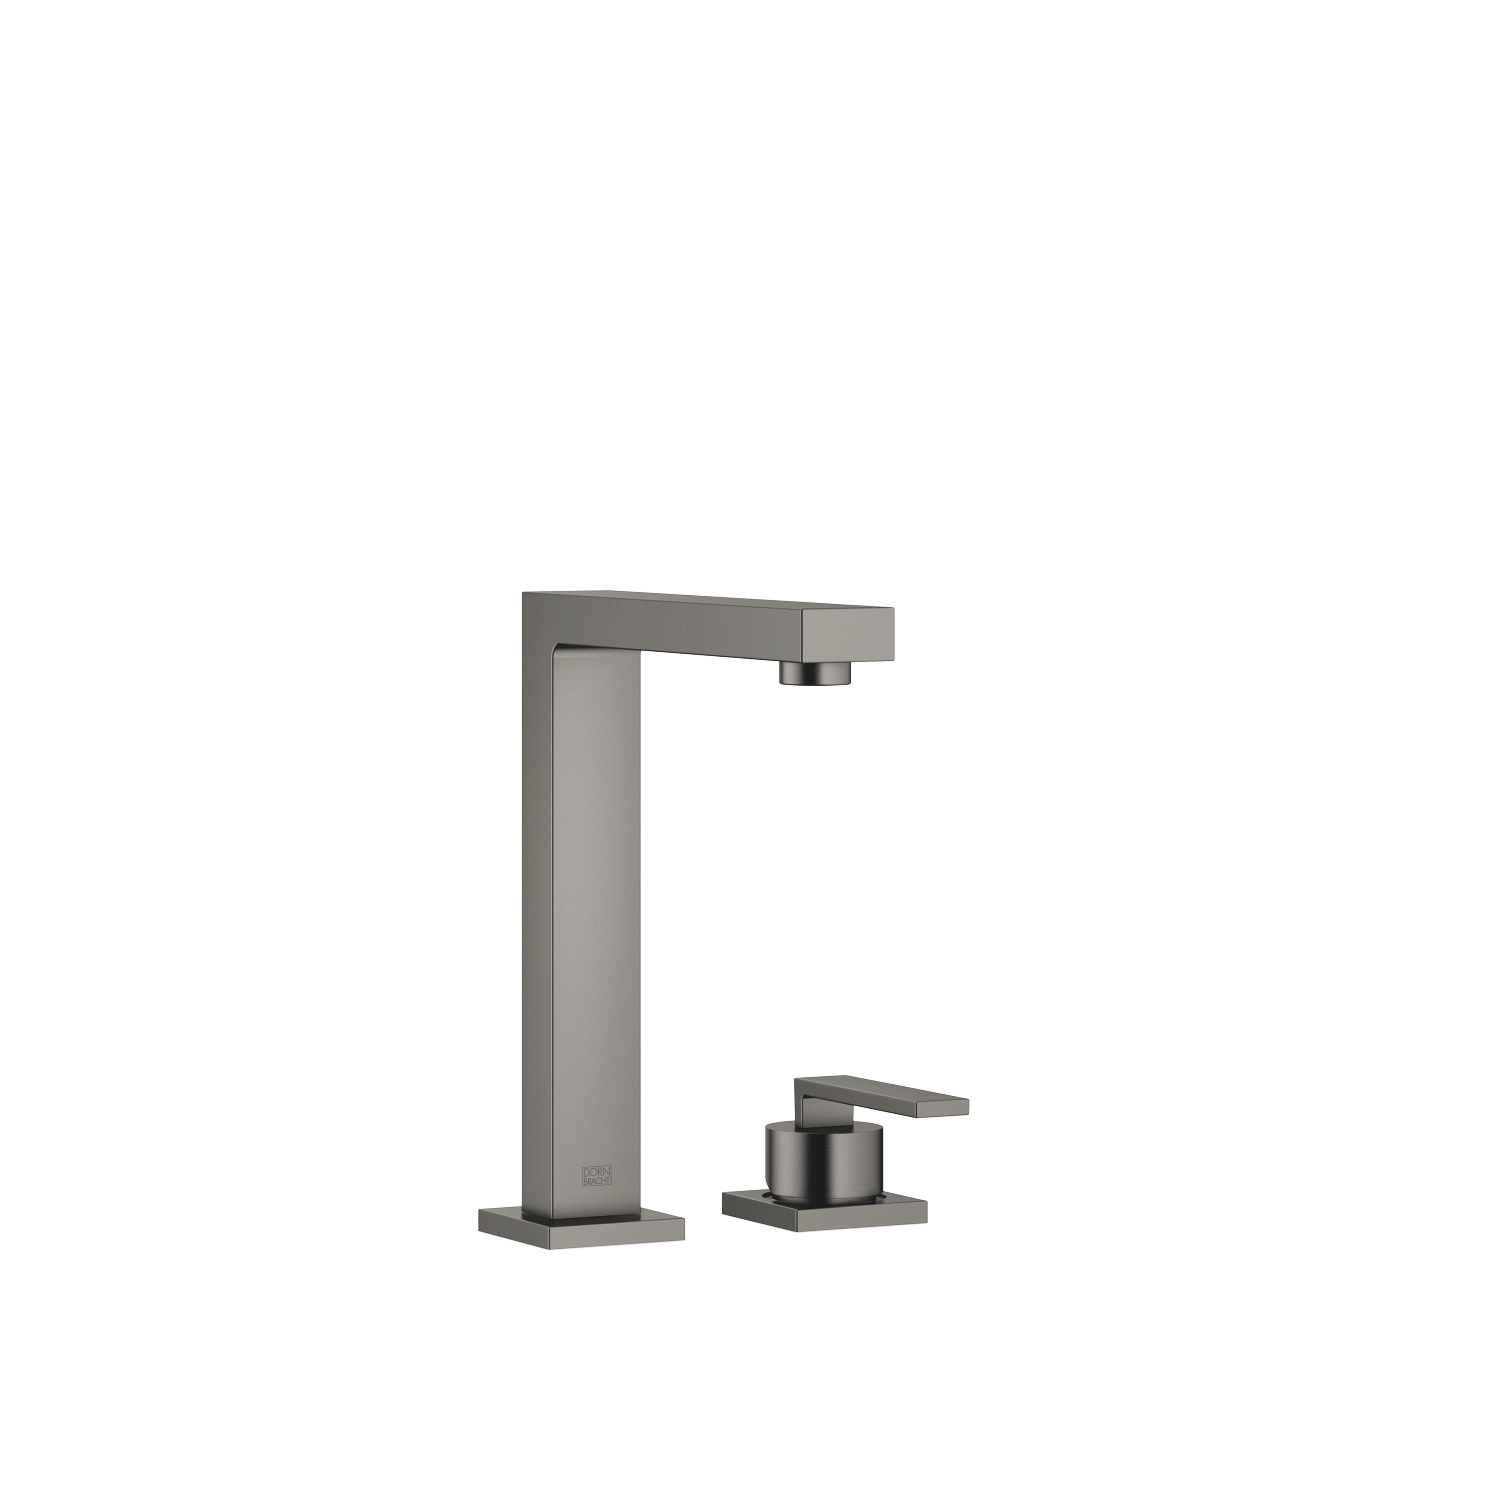 BAR TAP Two-hole mixer with individual rosettes - Dark Platinum matt